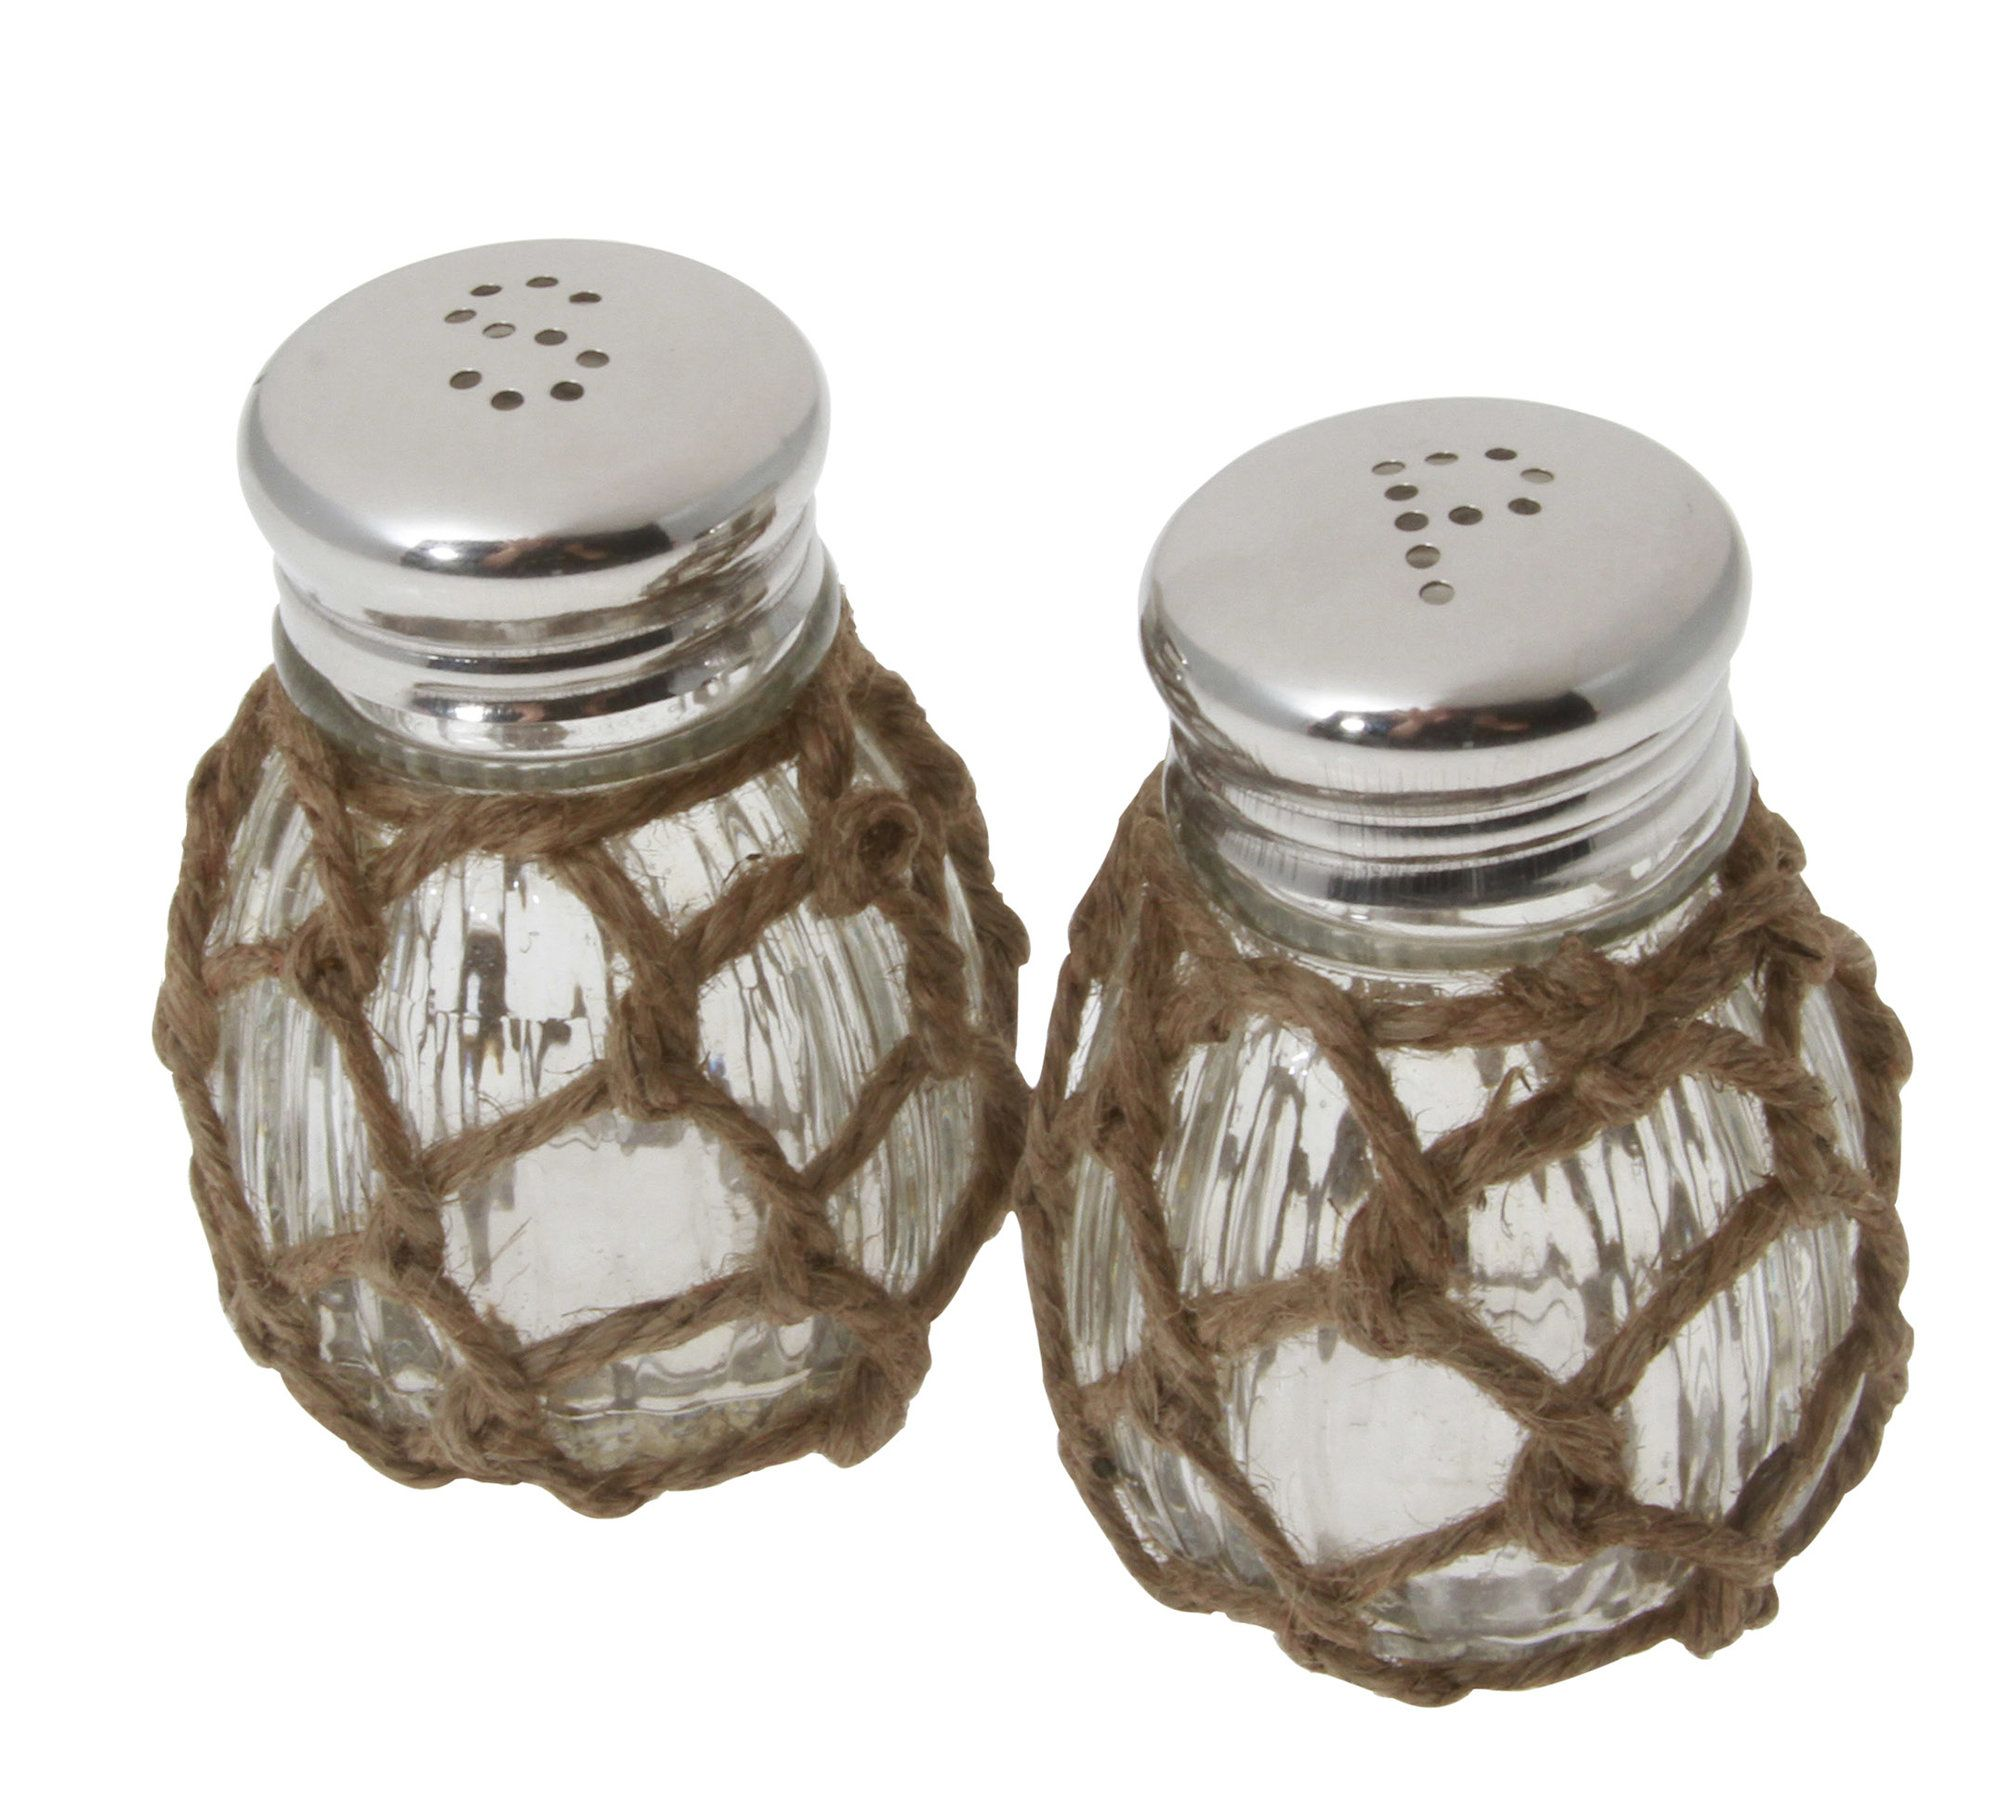 Colefax Nautical Rope Salt and Pepper Shaker Set SAC